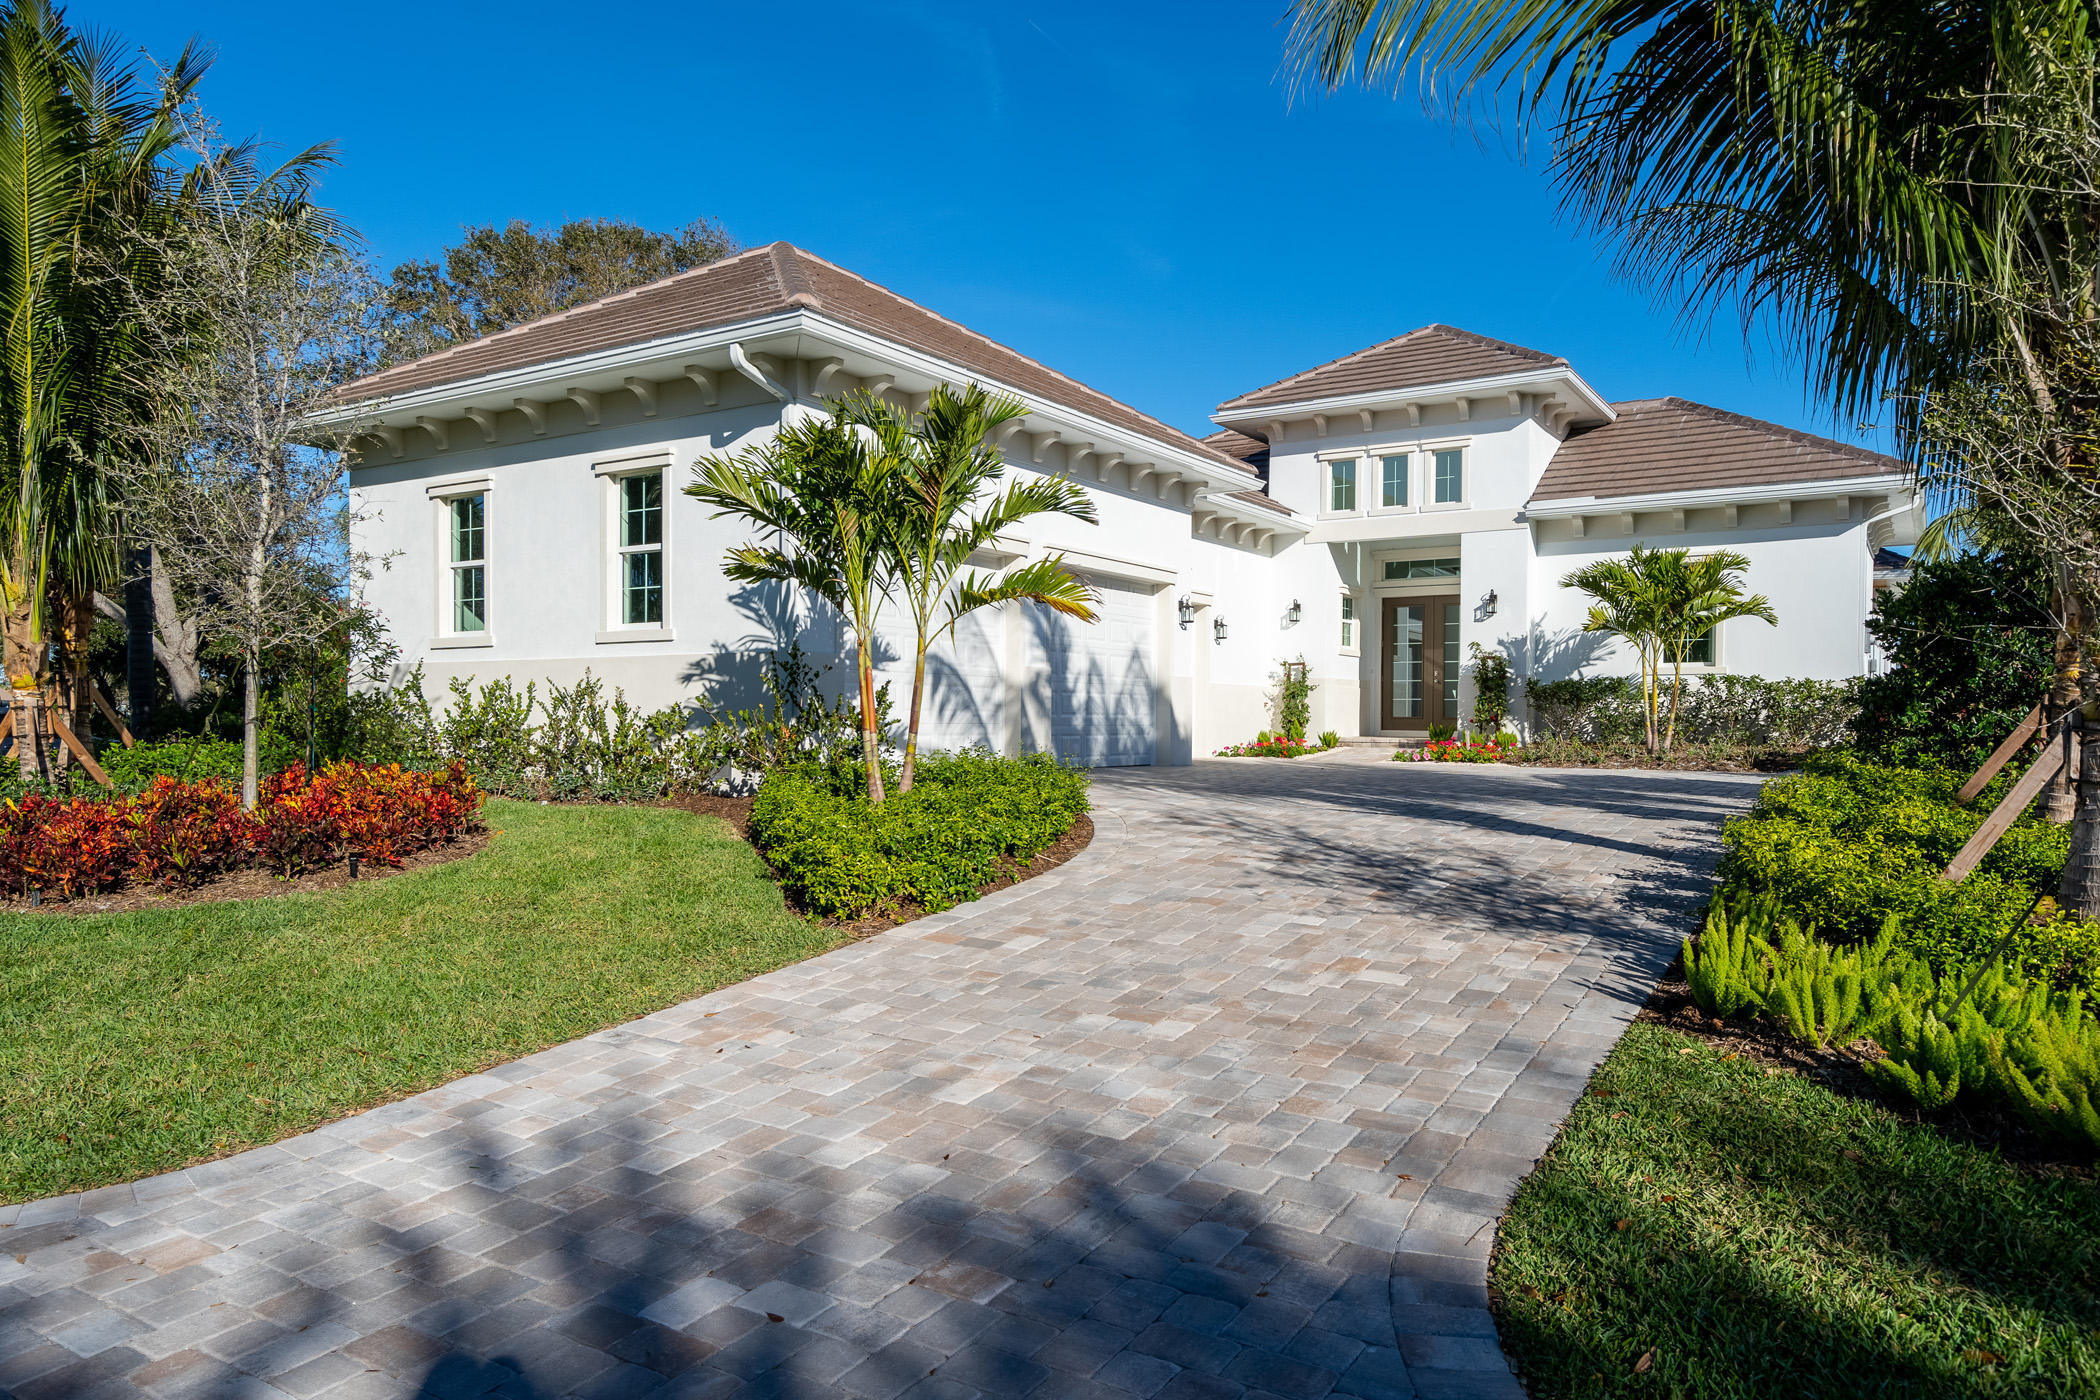 Photo of 11 Caribe Way, Orchid, FL 32963